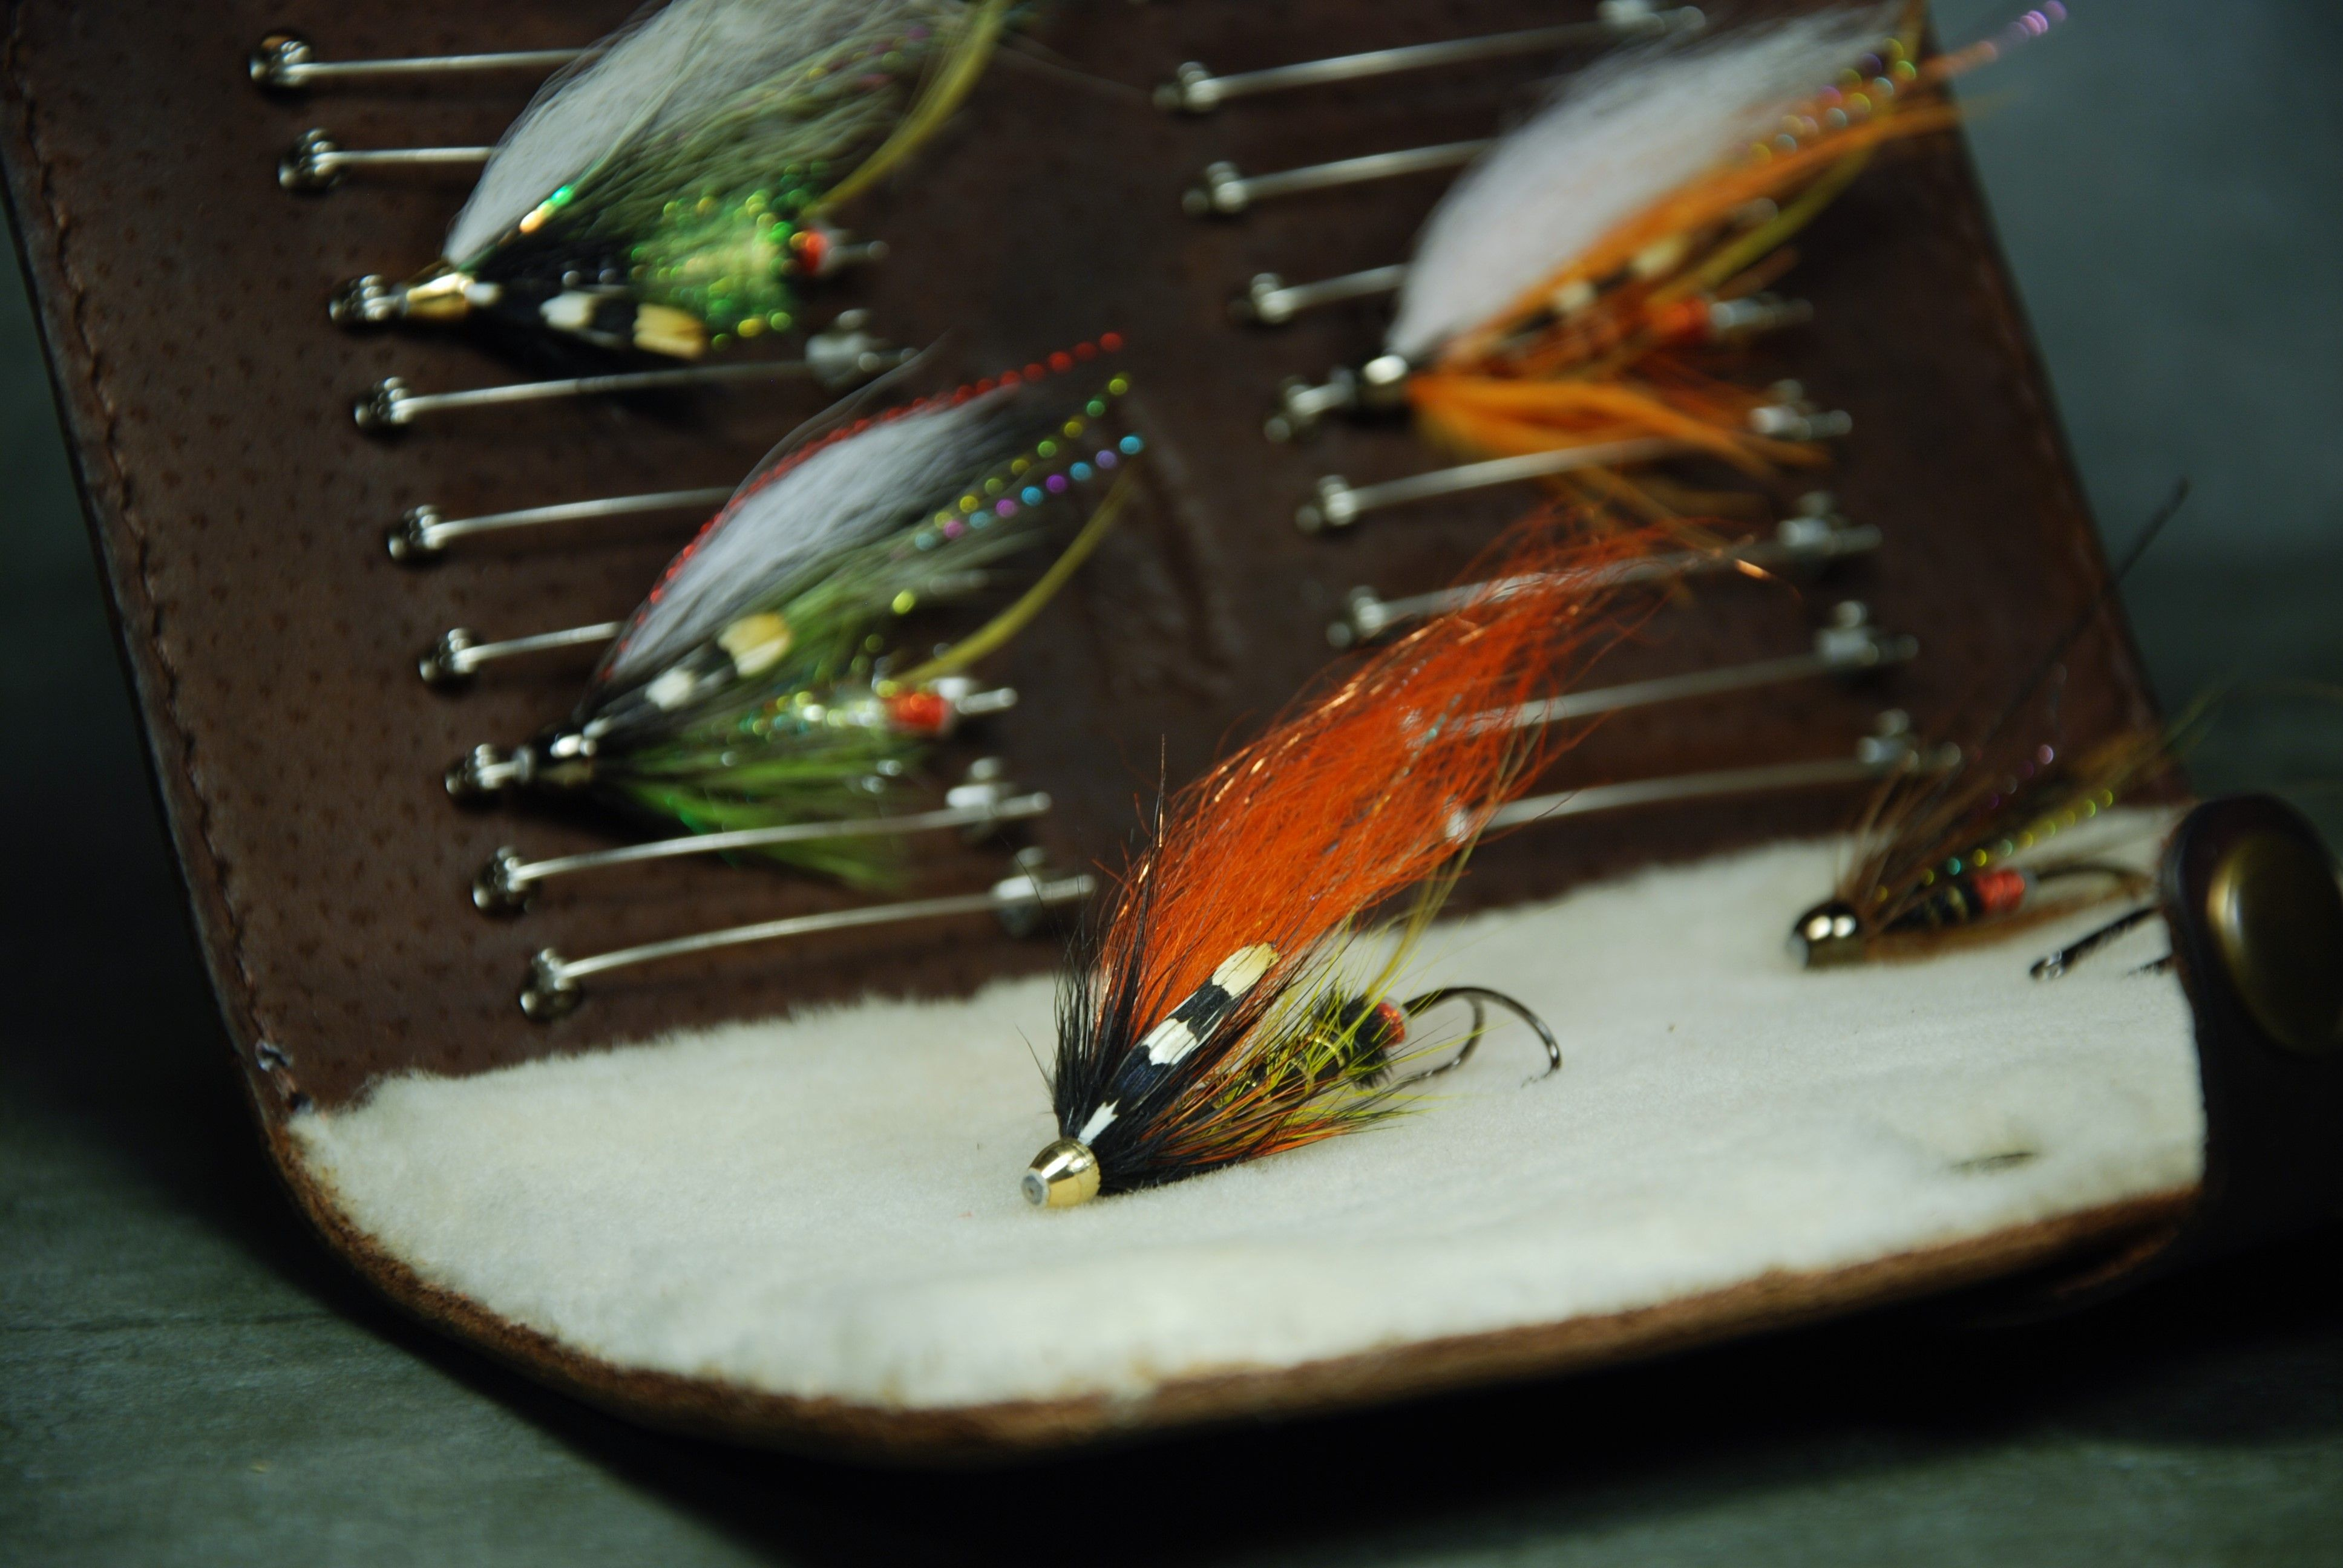 Fly WALLET fly fishing accessories Salmon trout flies